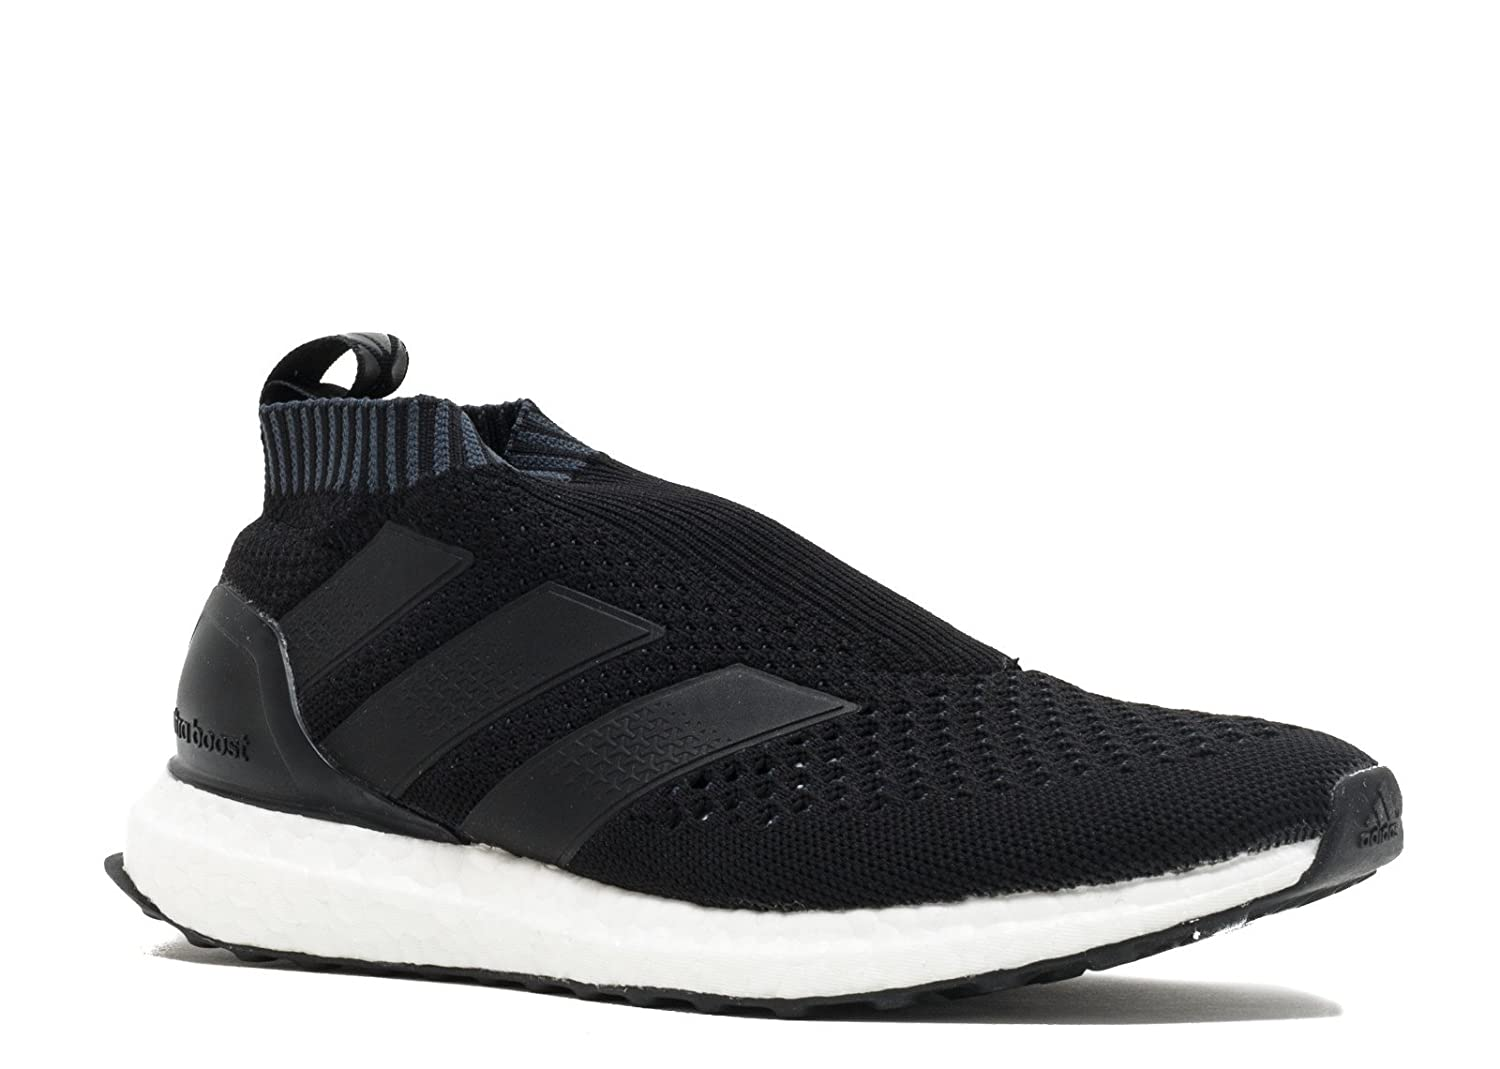 online store 610d3 7399b Amazon.com | Ace 16+ Purecontrol Ultra Boost - By1688 - Size ...